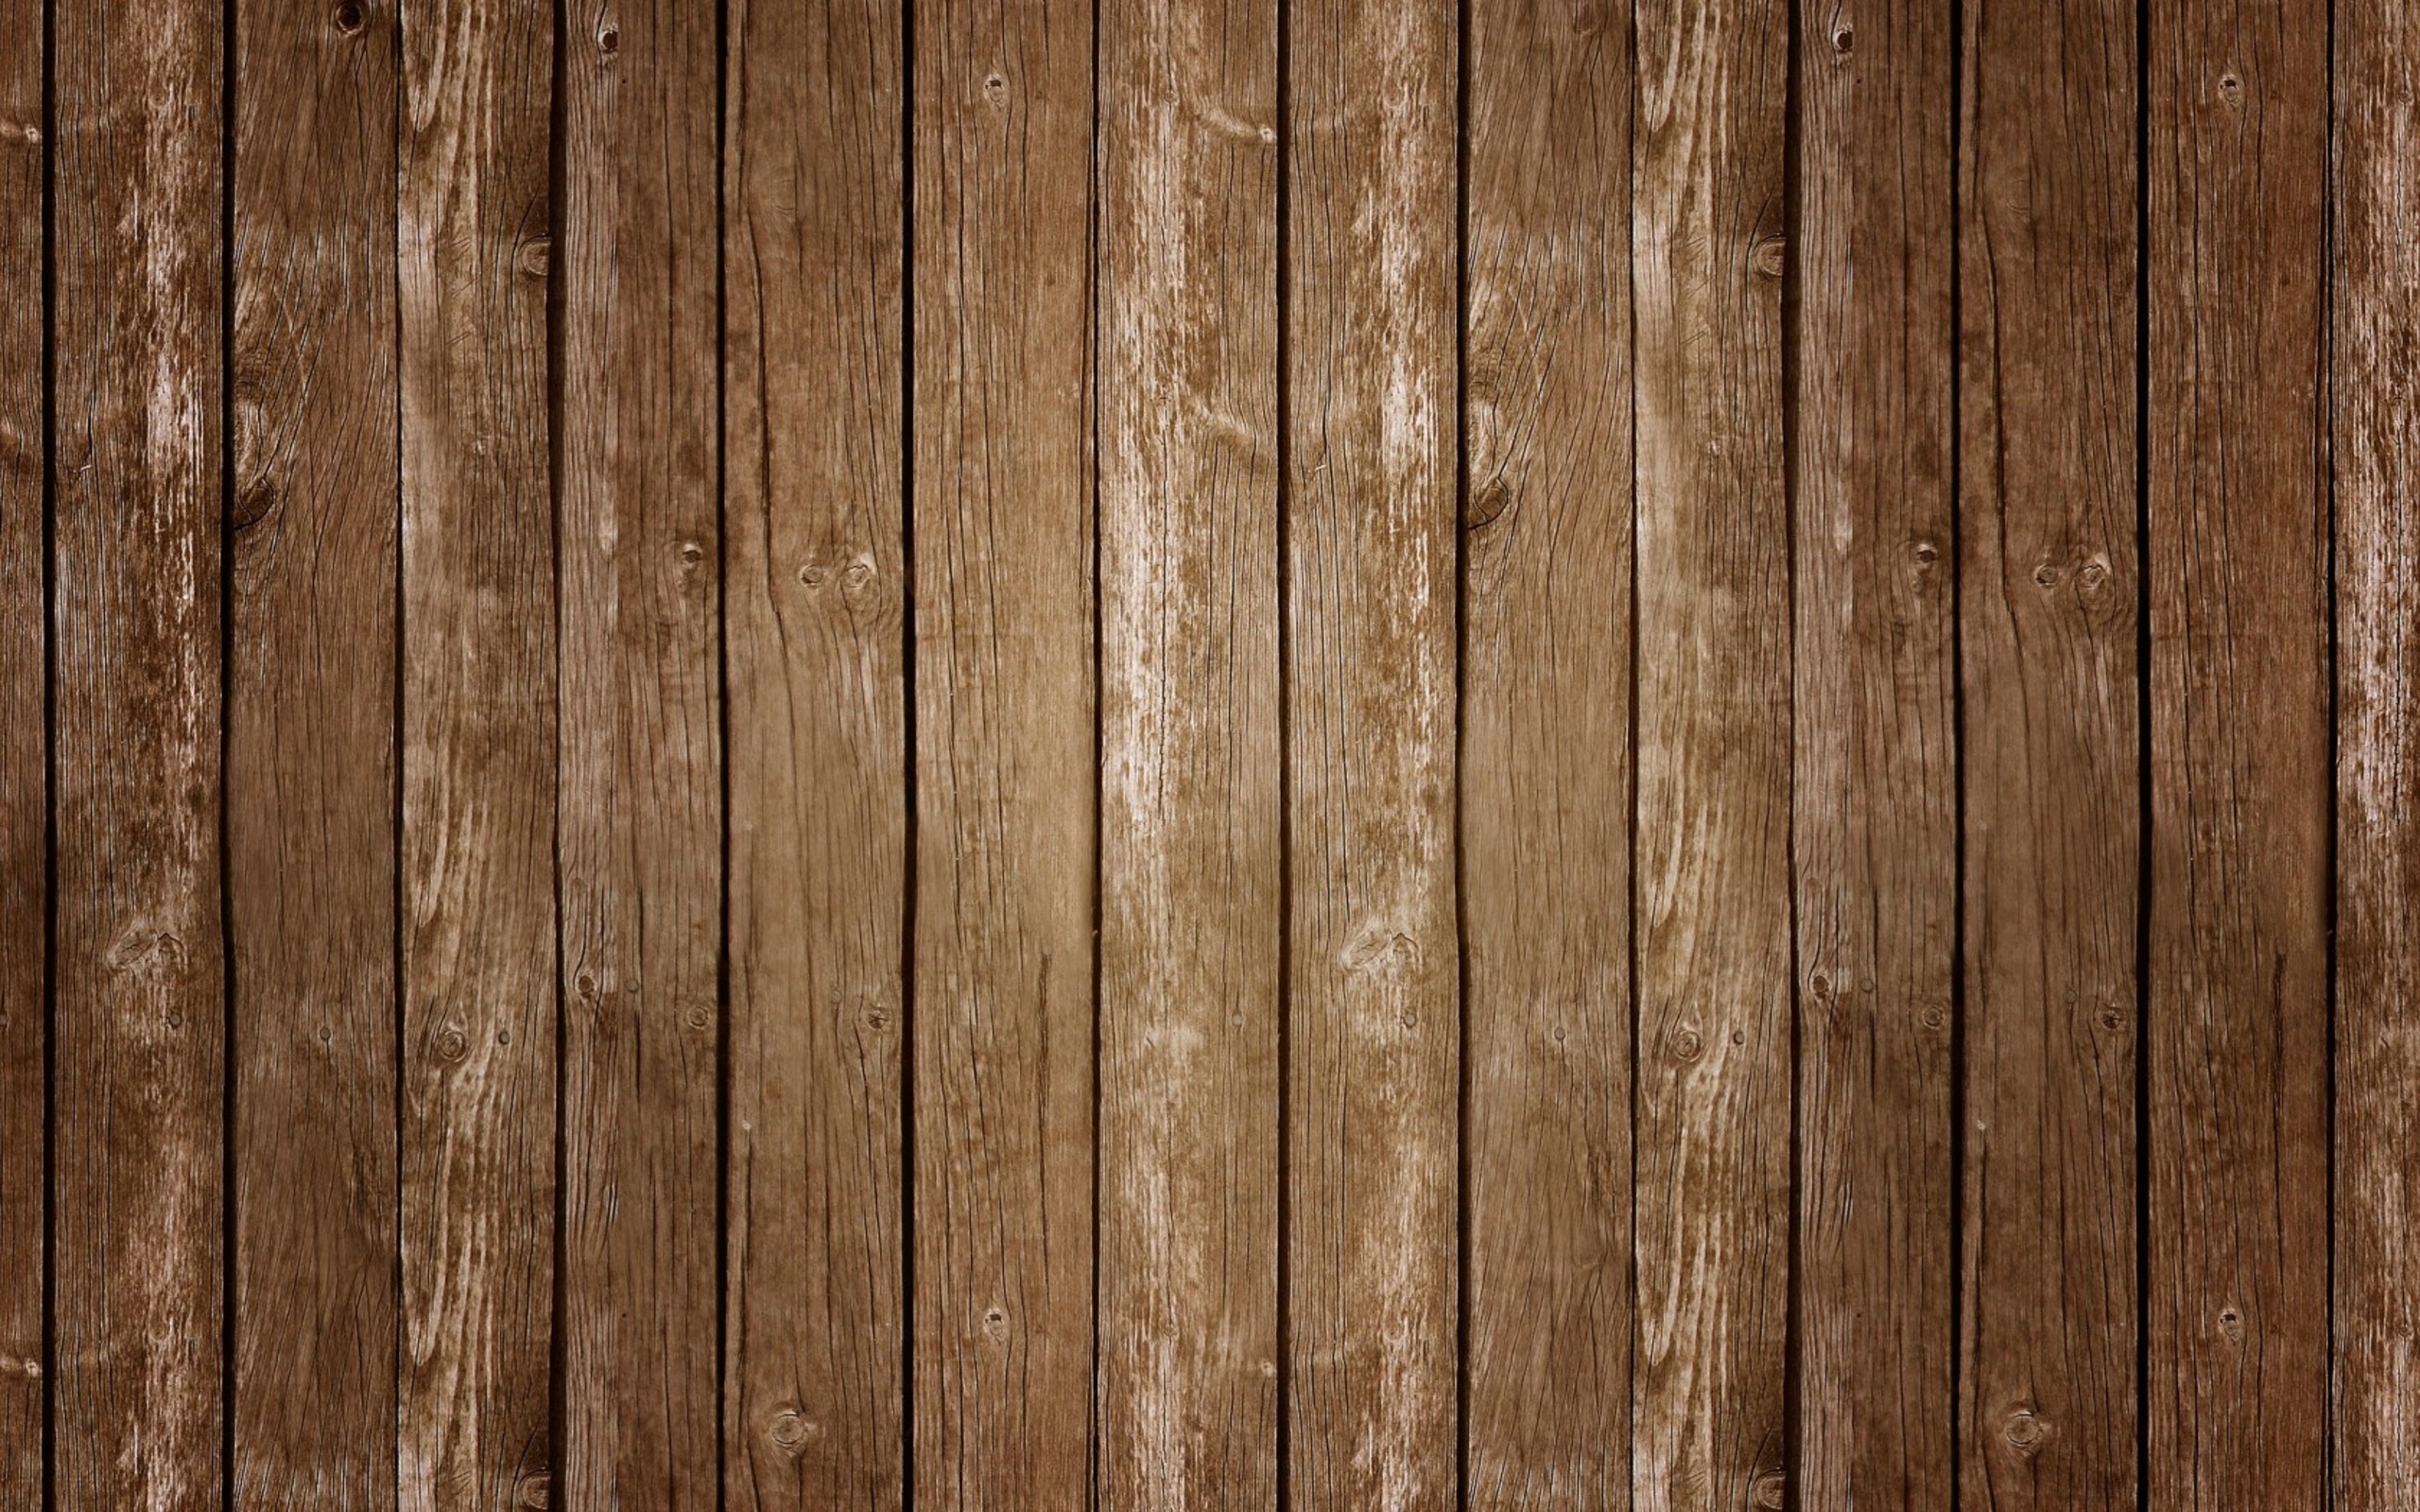 Reclaimed Wood Wallpaper 2015 Best Auto Reviews